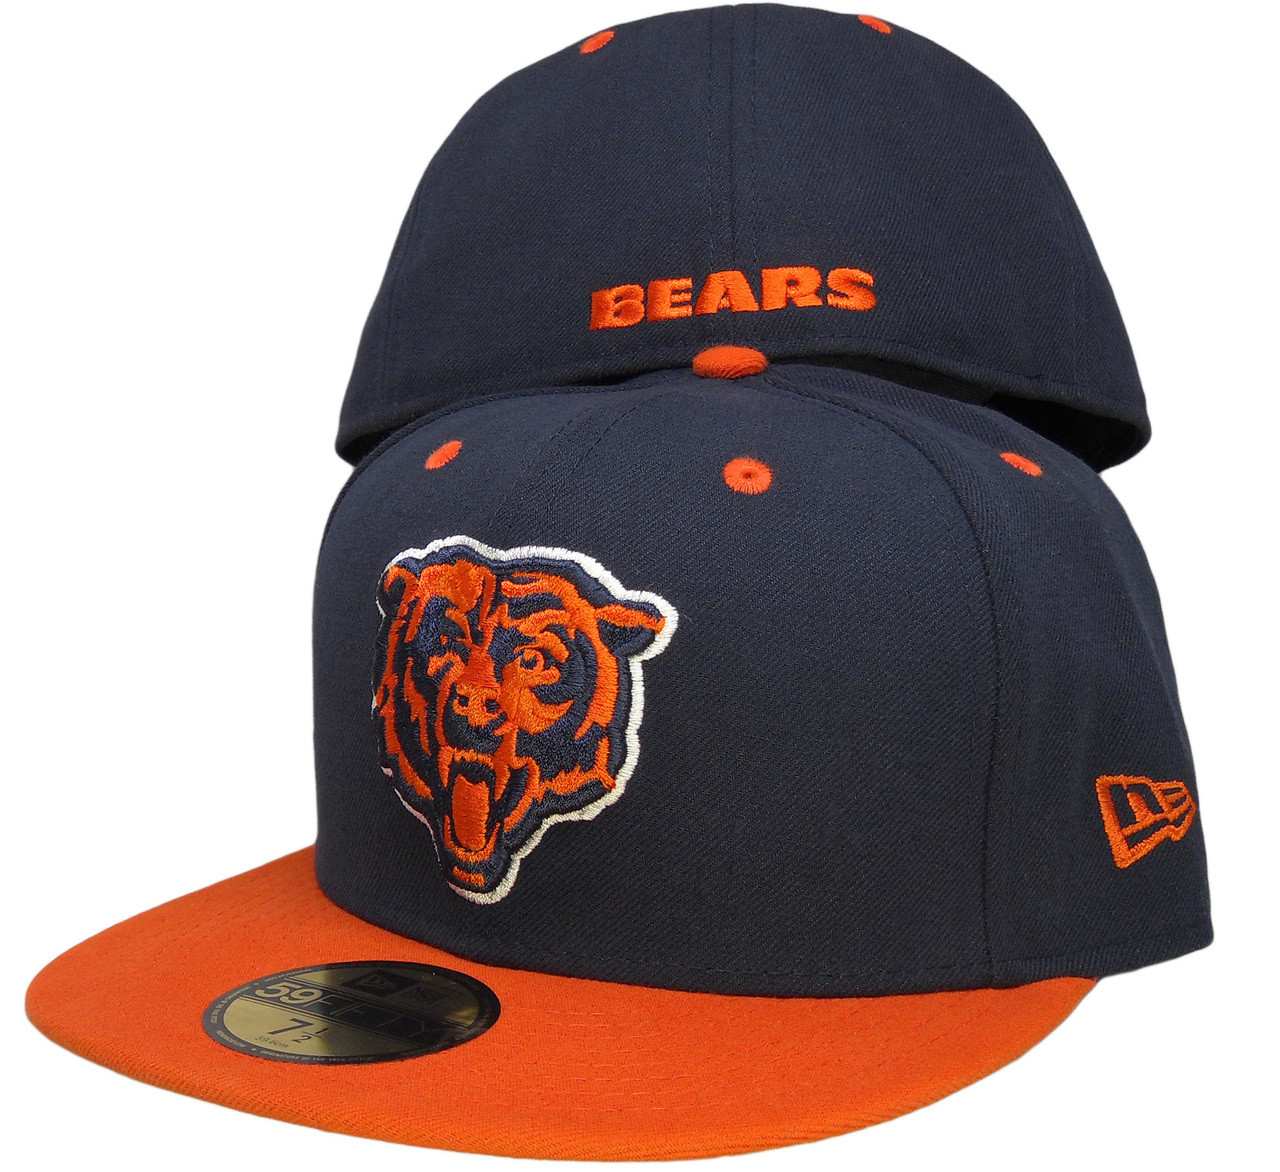 98b9ae93 Chicago Bears New Era 59Fifty 2Tone Fitted Hat - Navy, Orange, White